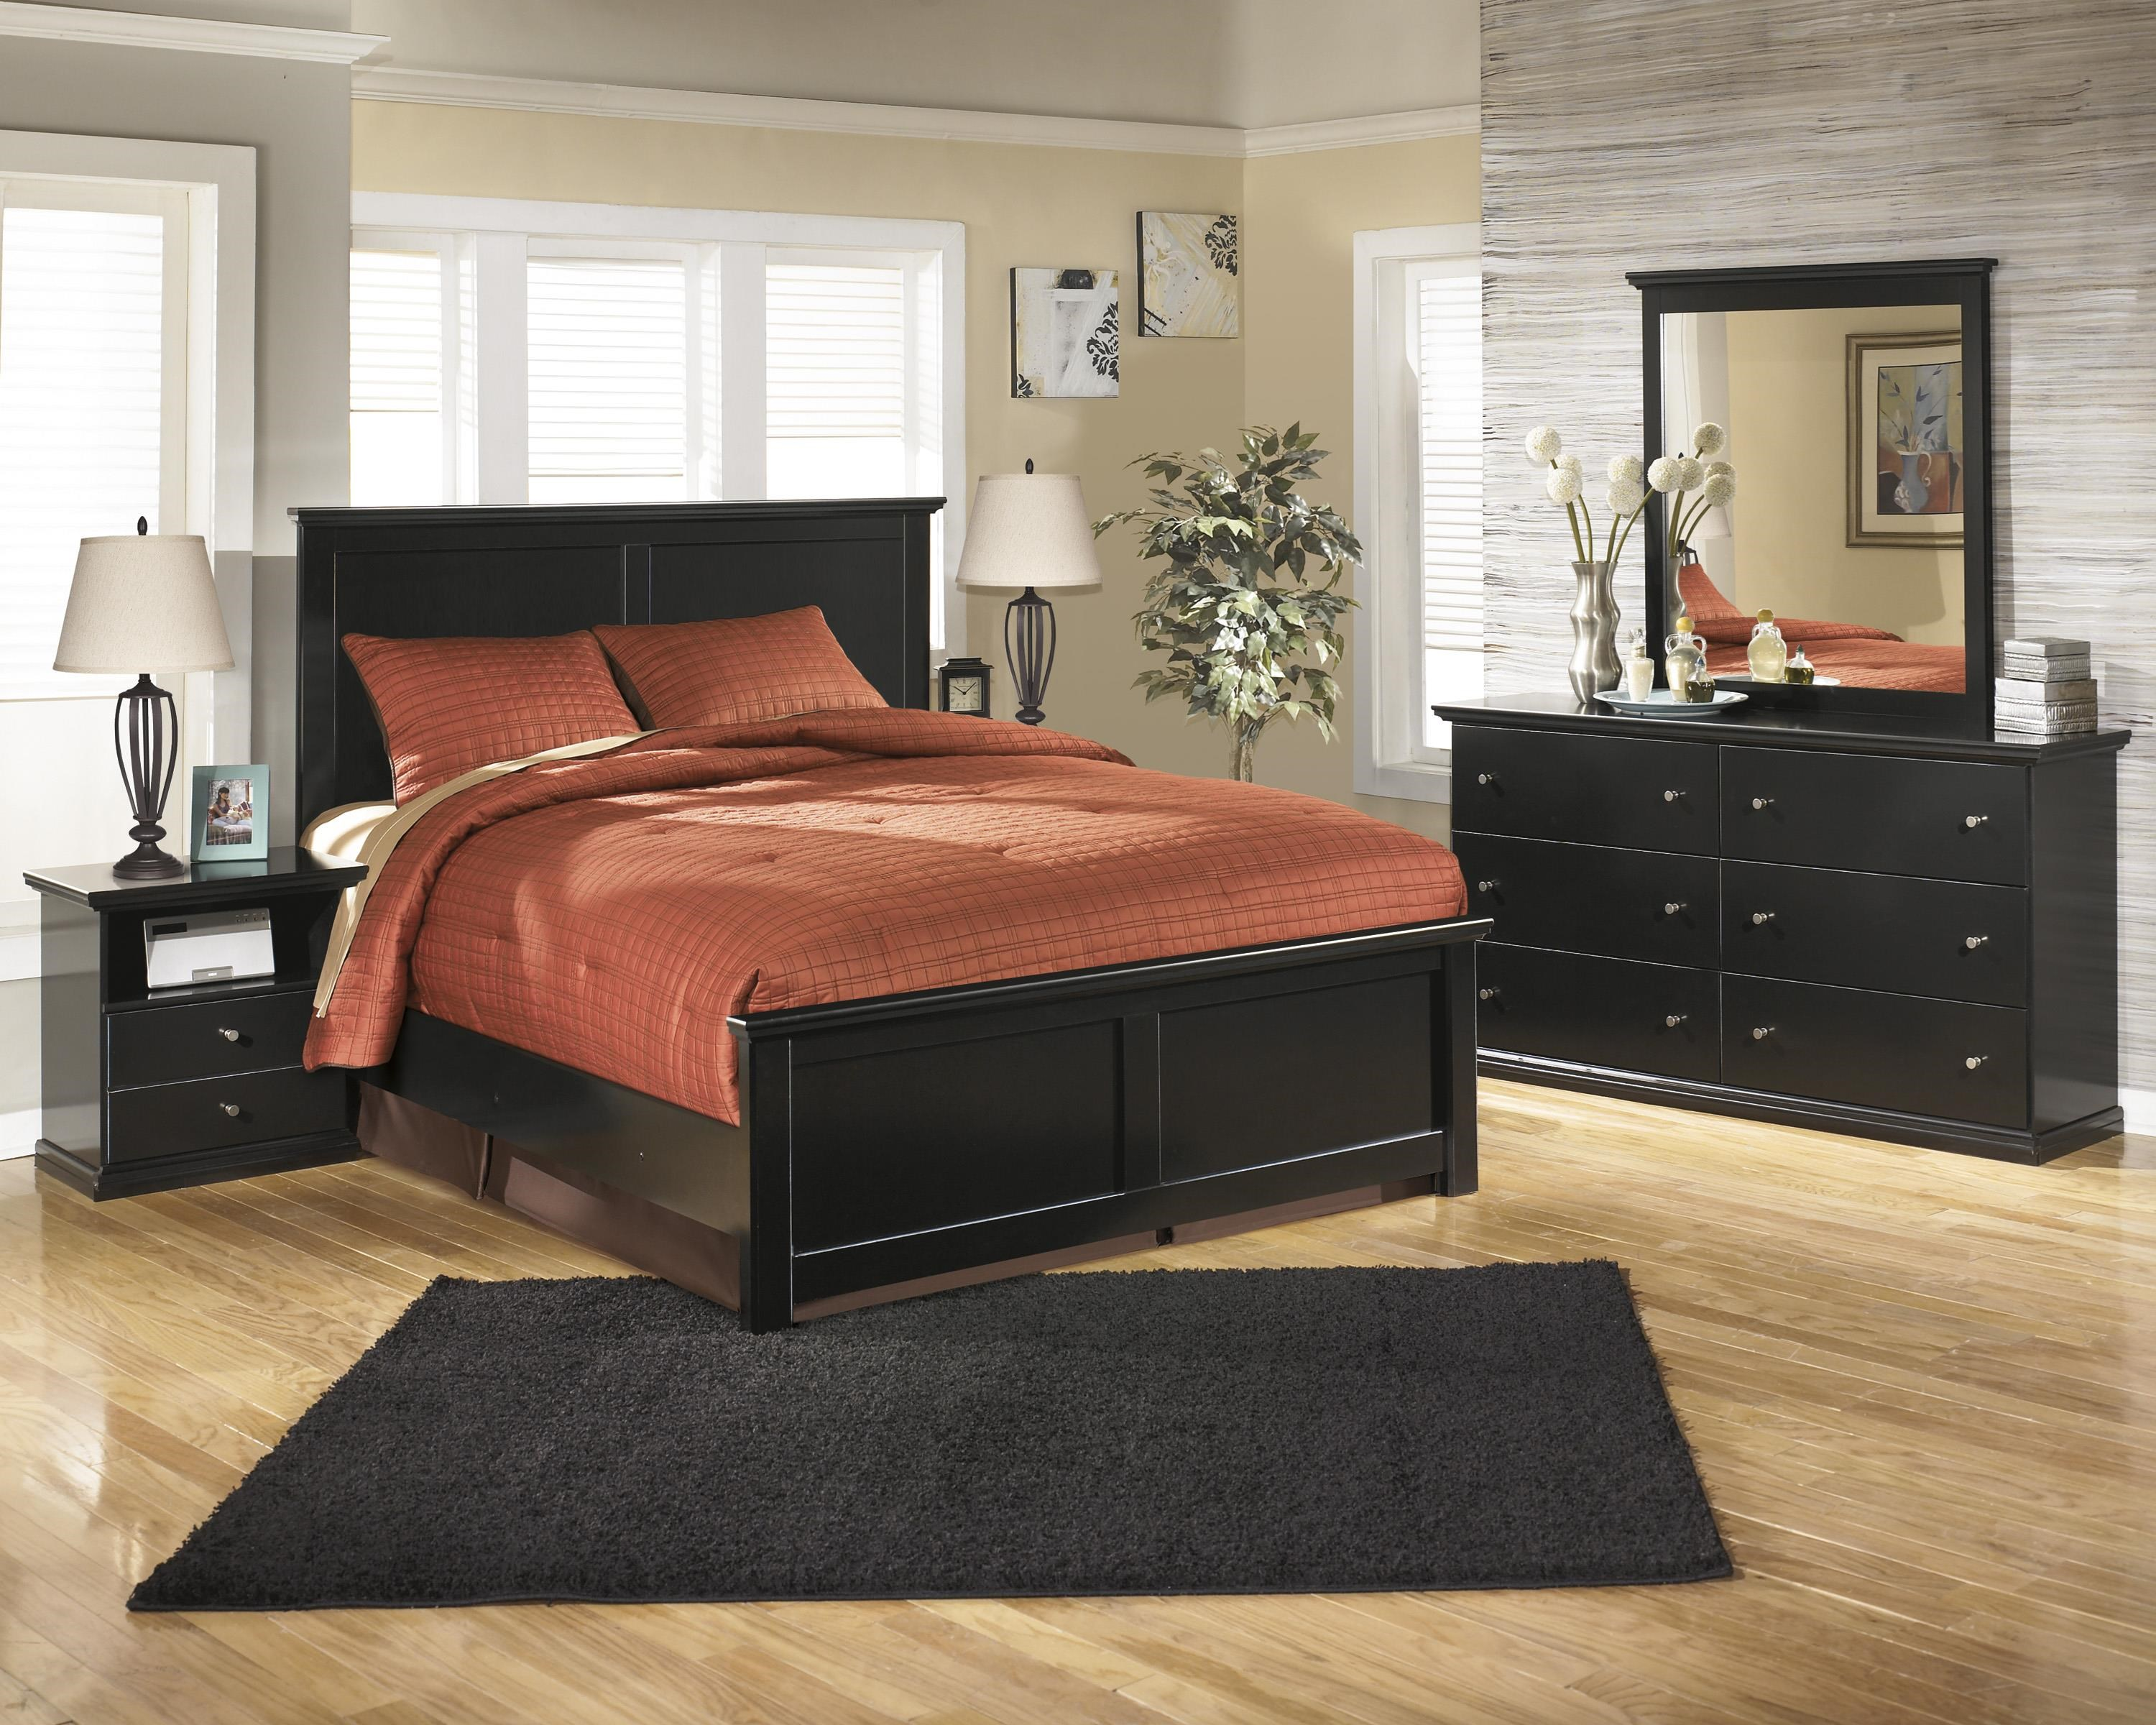 King Panel Bed, Dresser, Mirror and Nightst